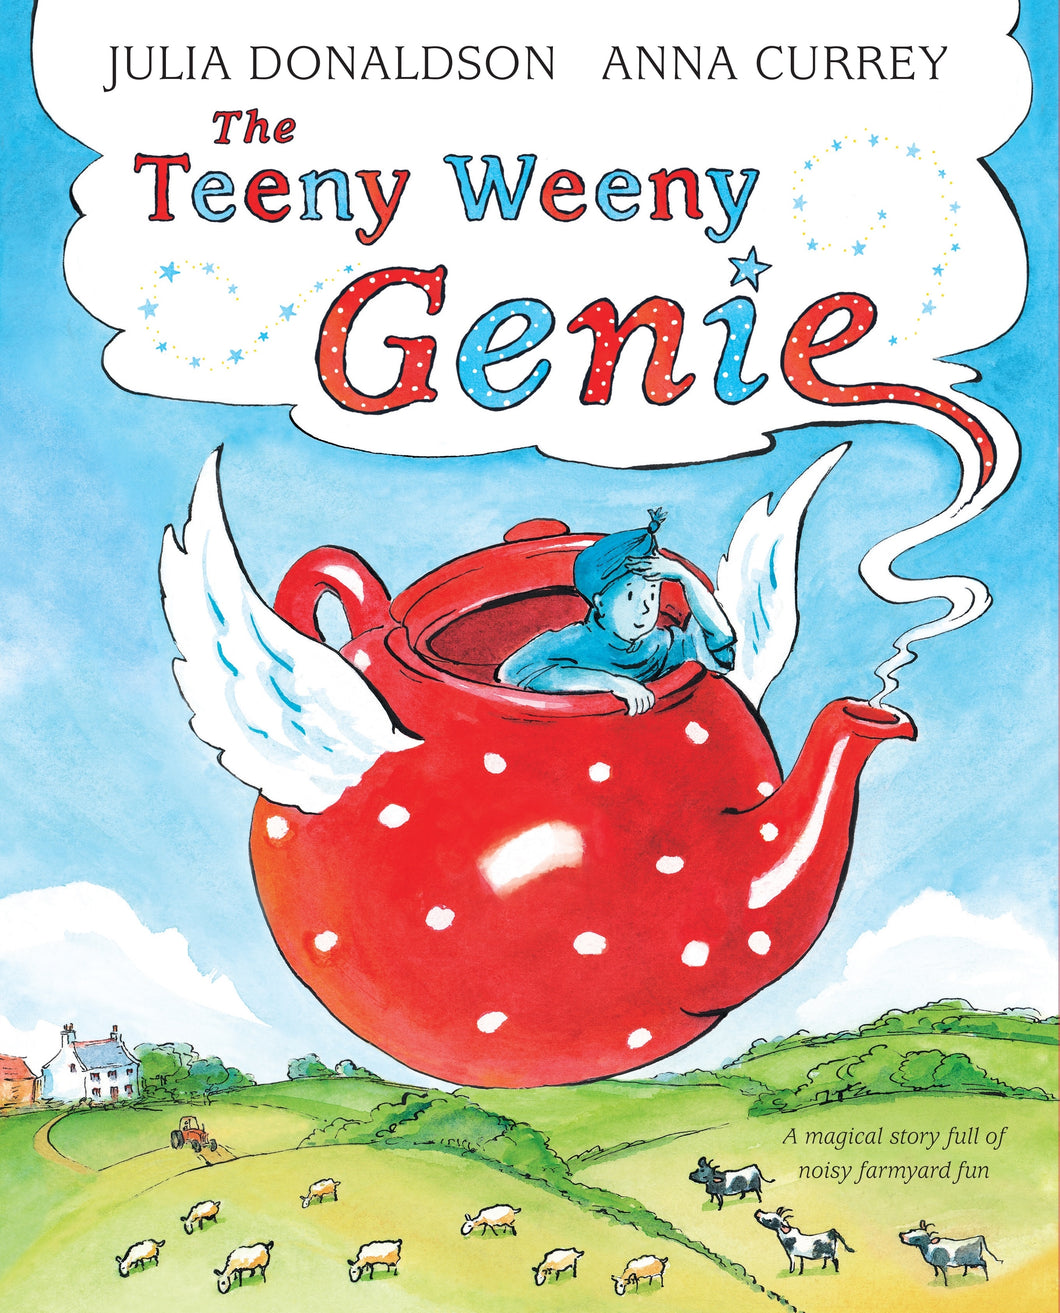 The Teeny Weeny Genie by Julia Donaldson and Anna Currey